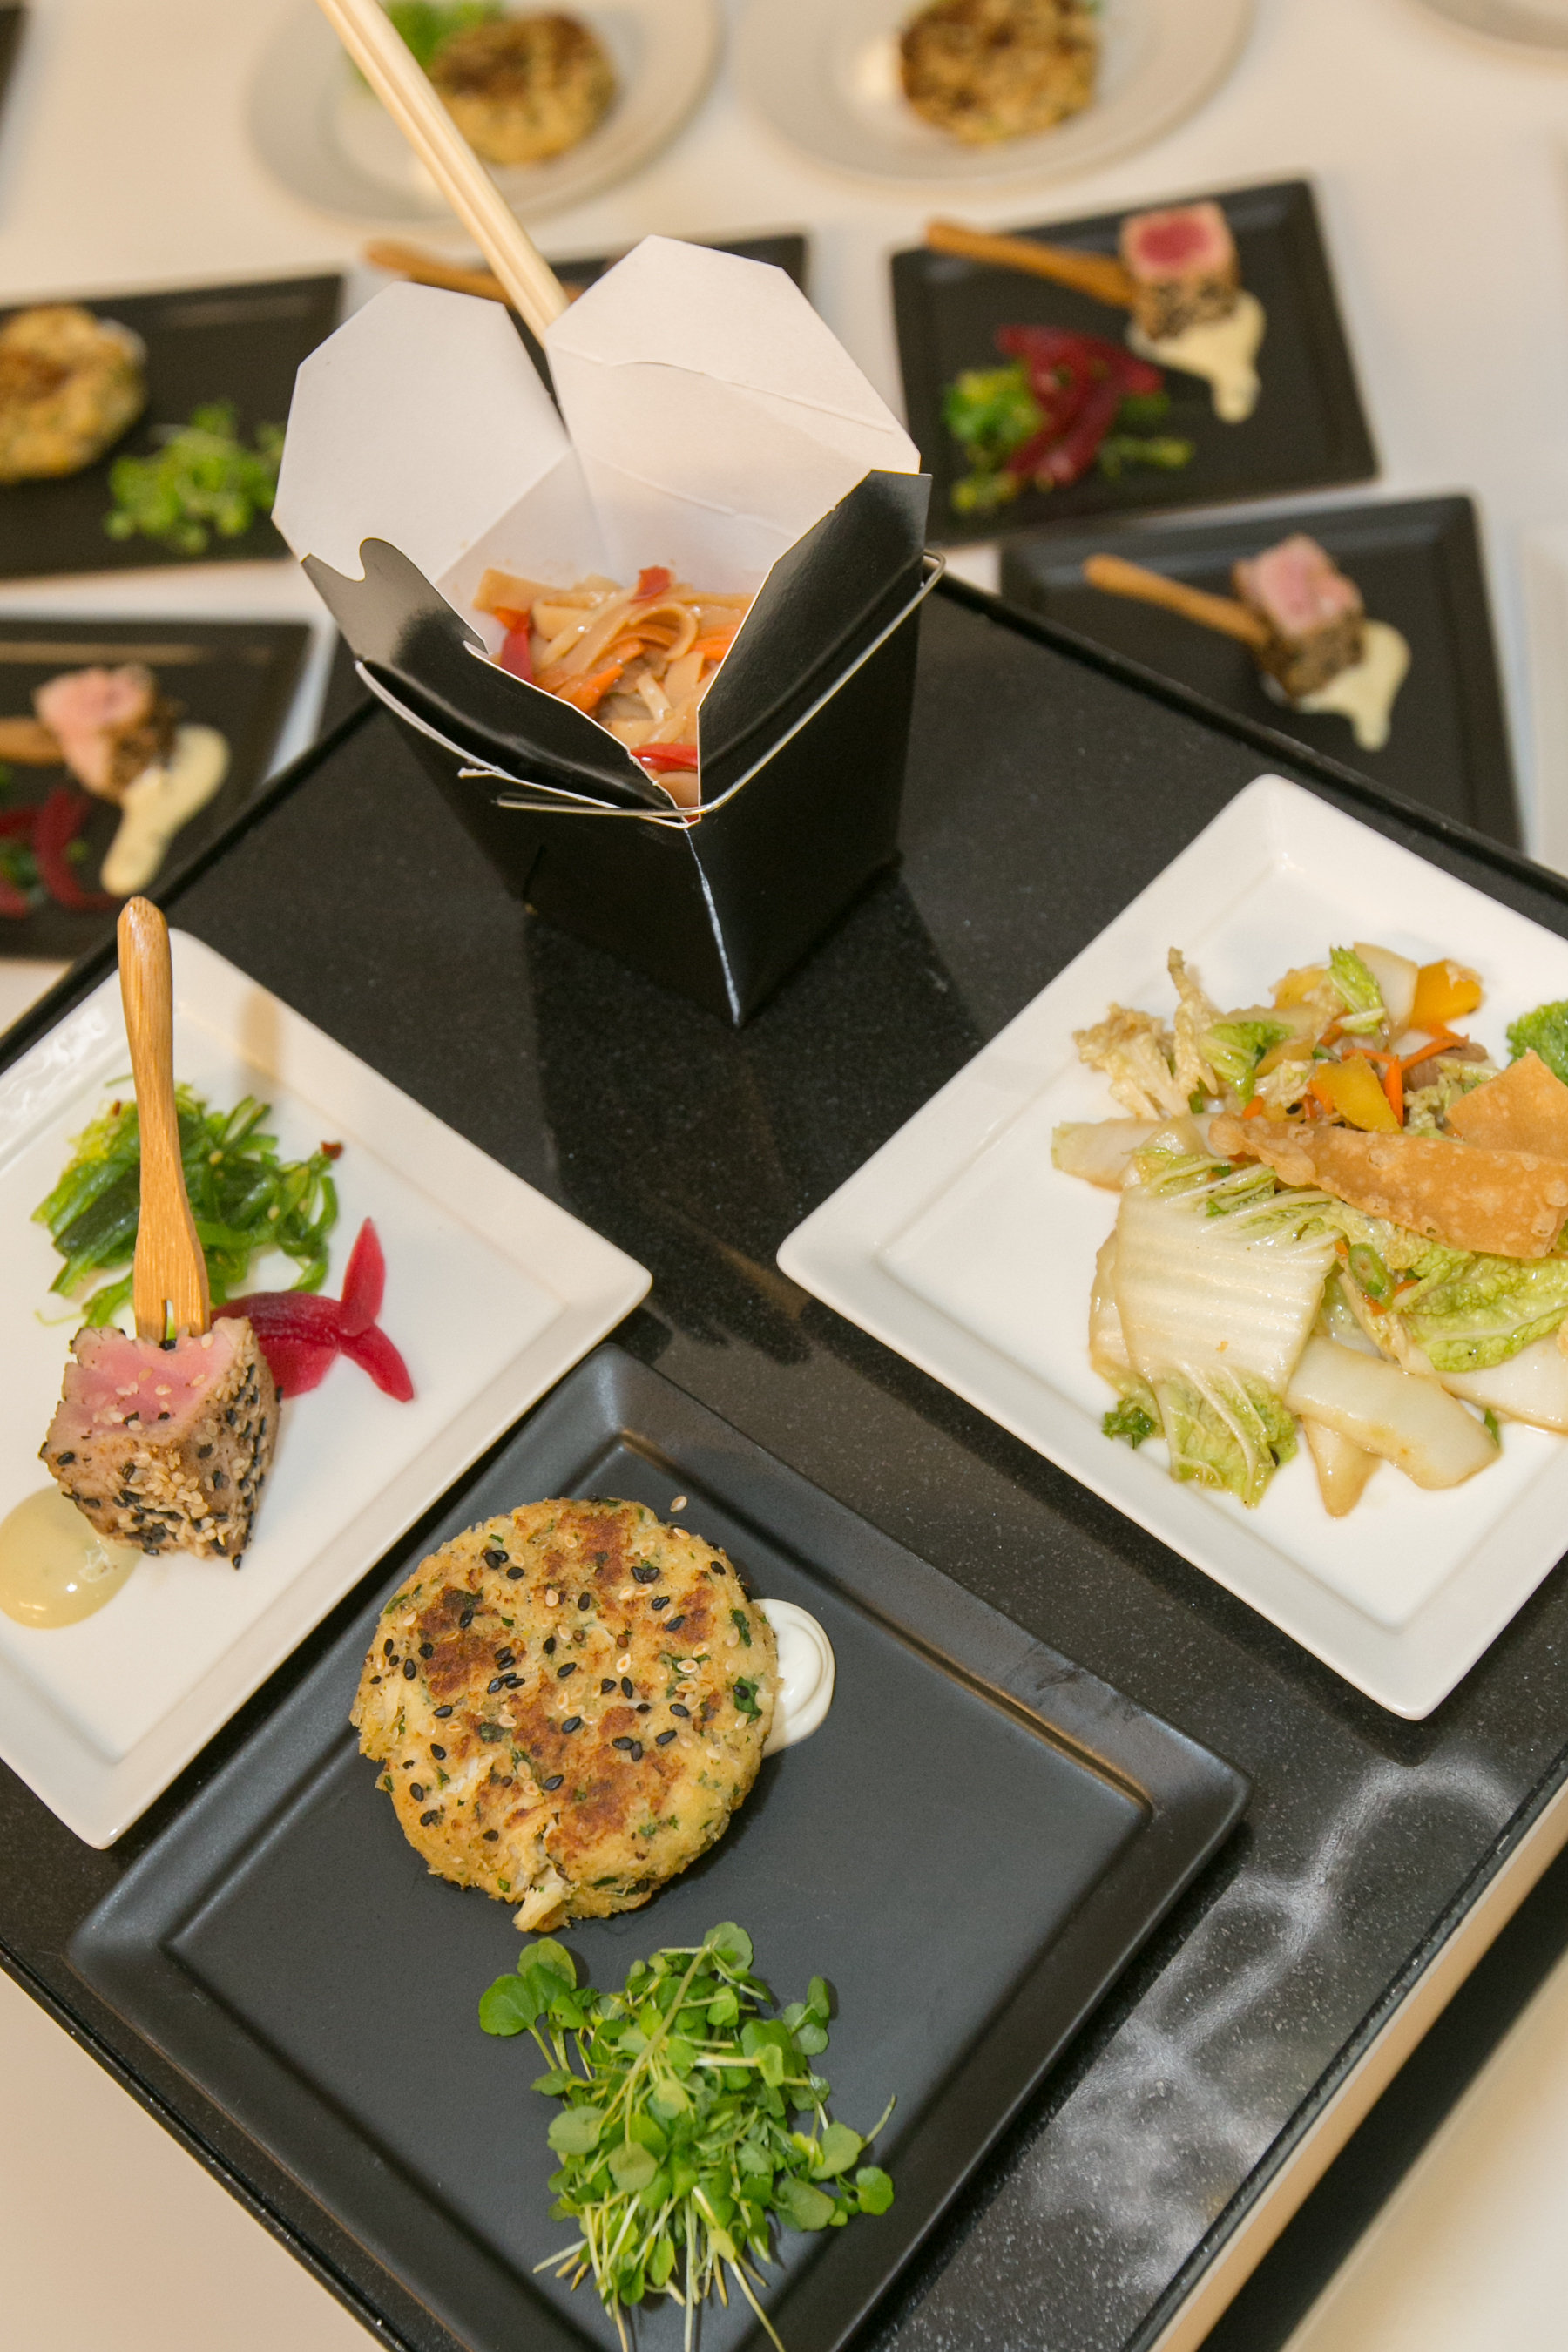 Asian Rice Stick Noodle Salad with Julienne Vegetables in Chinese To-Go Boxes, Fresh Vietnamese Spring Roll Salad with Wonton Strips and Citrus Sesame Vinaigrette and Sesame Crusted Crab Cakes with Ginger Cream and Micro Cress